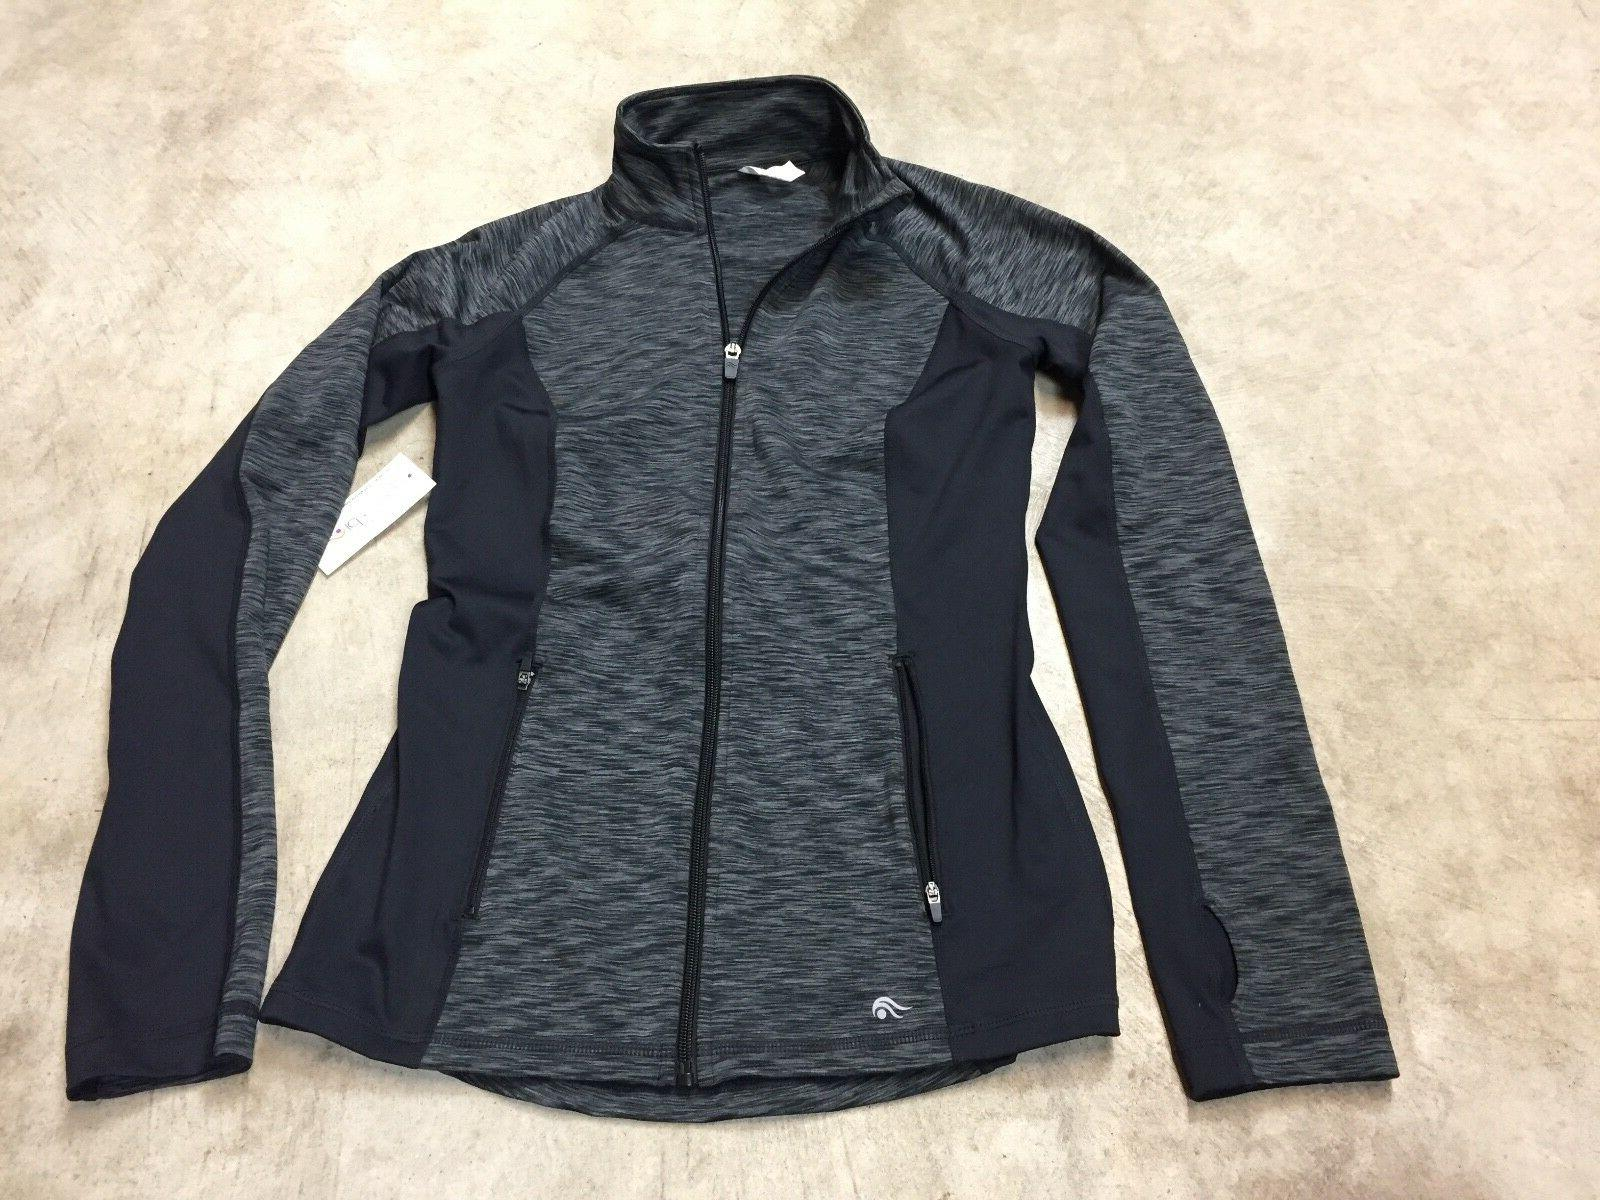 NEW NWT womens ideology core jacket full zip up athletic top